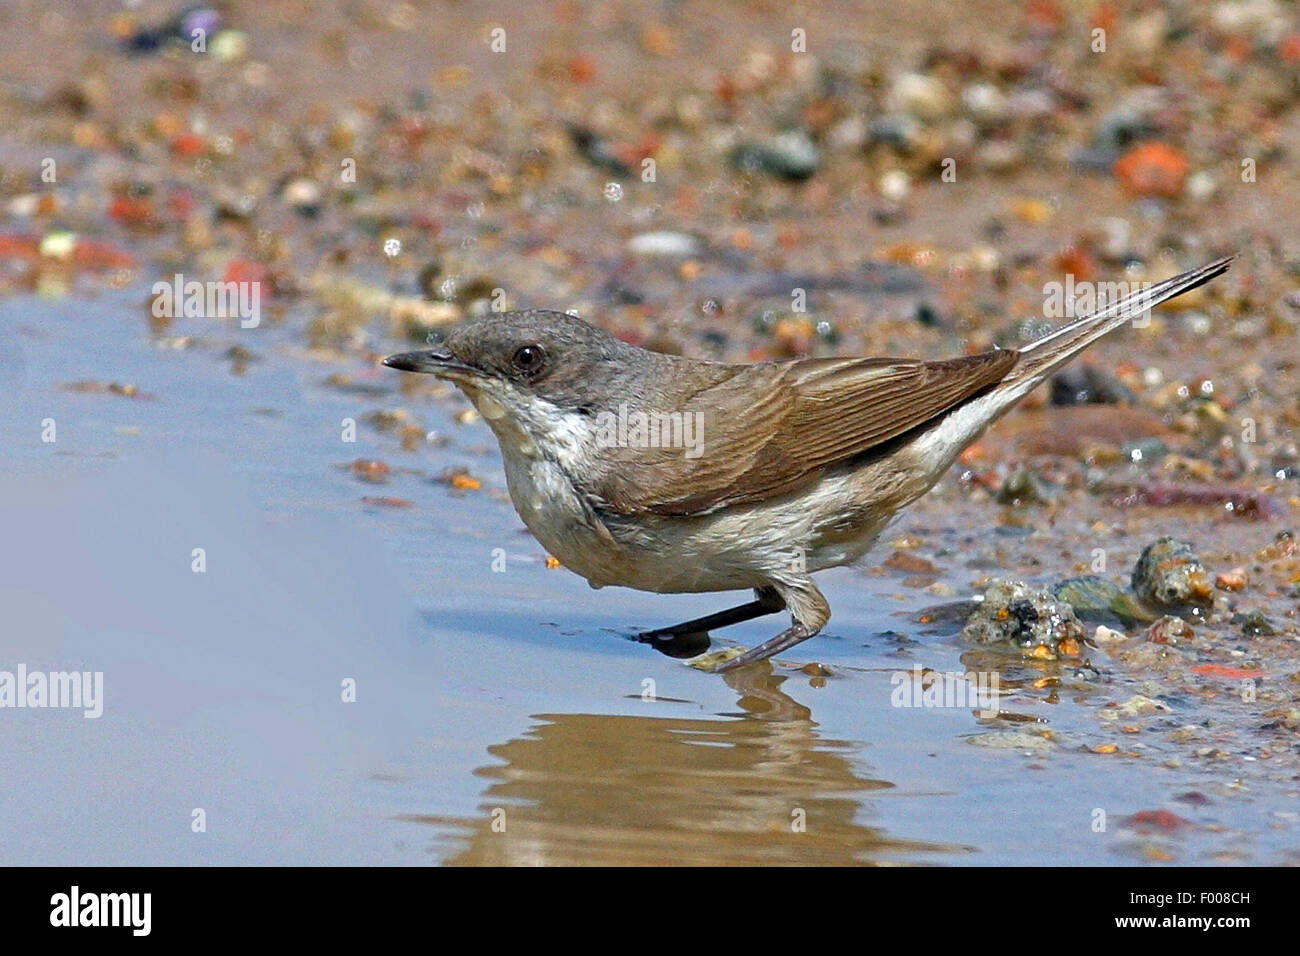 Lesser whitethroat (Sylvia curruca), in a puddle, Germany - Stock Image